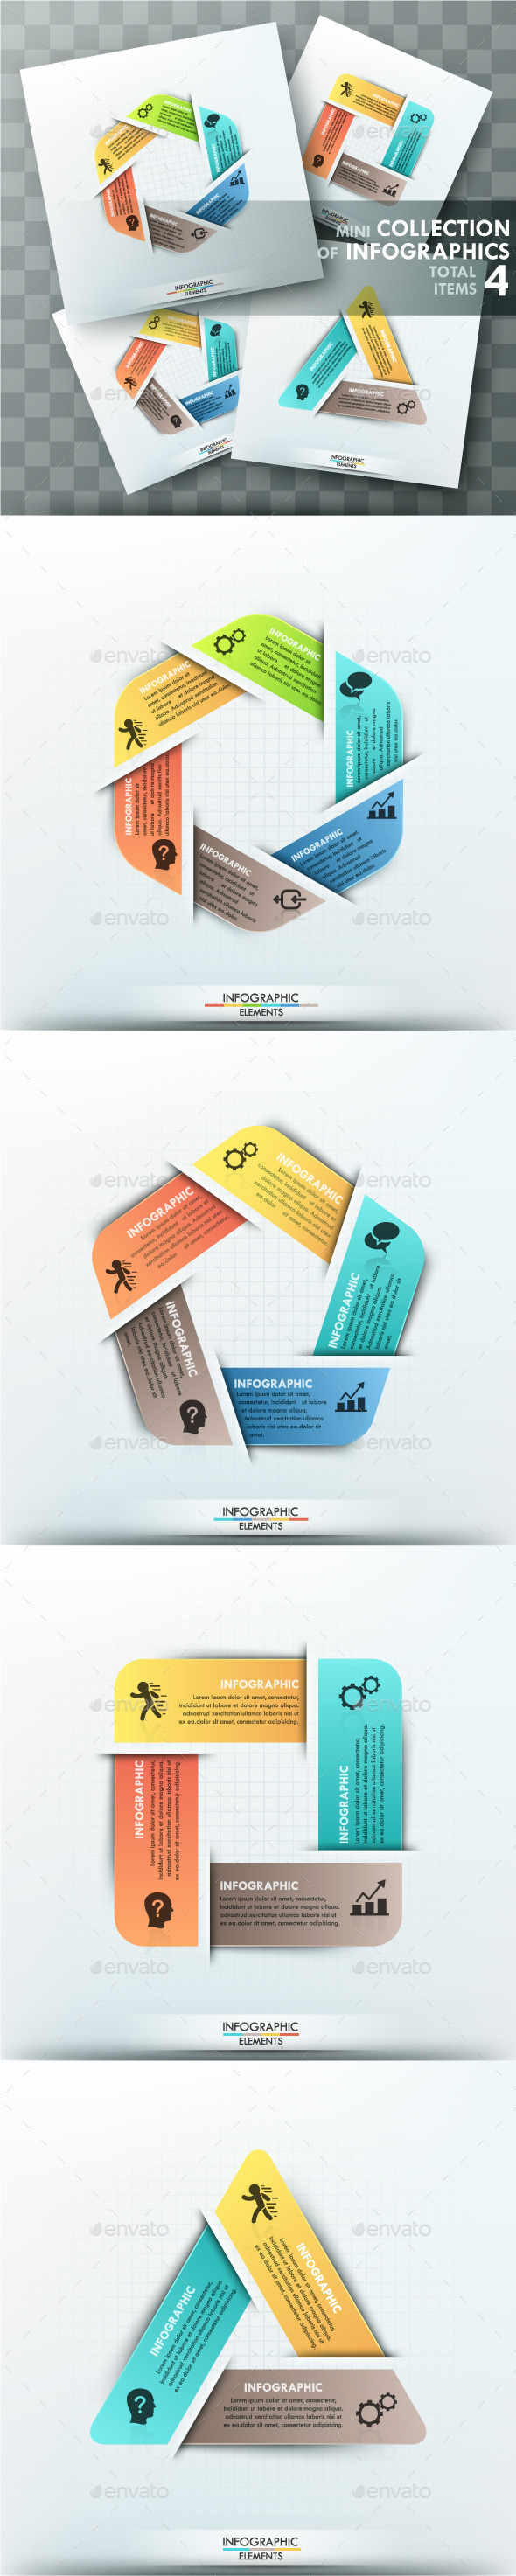 Mini Collection Of Infographics (4 Items) - Infographics